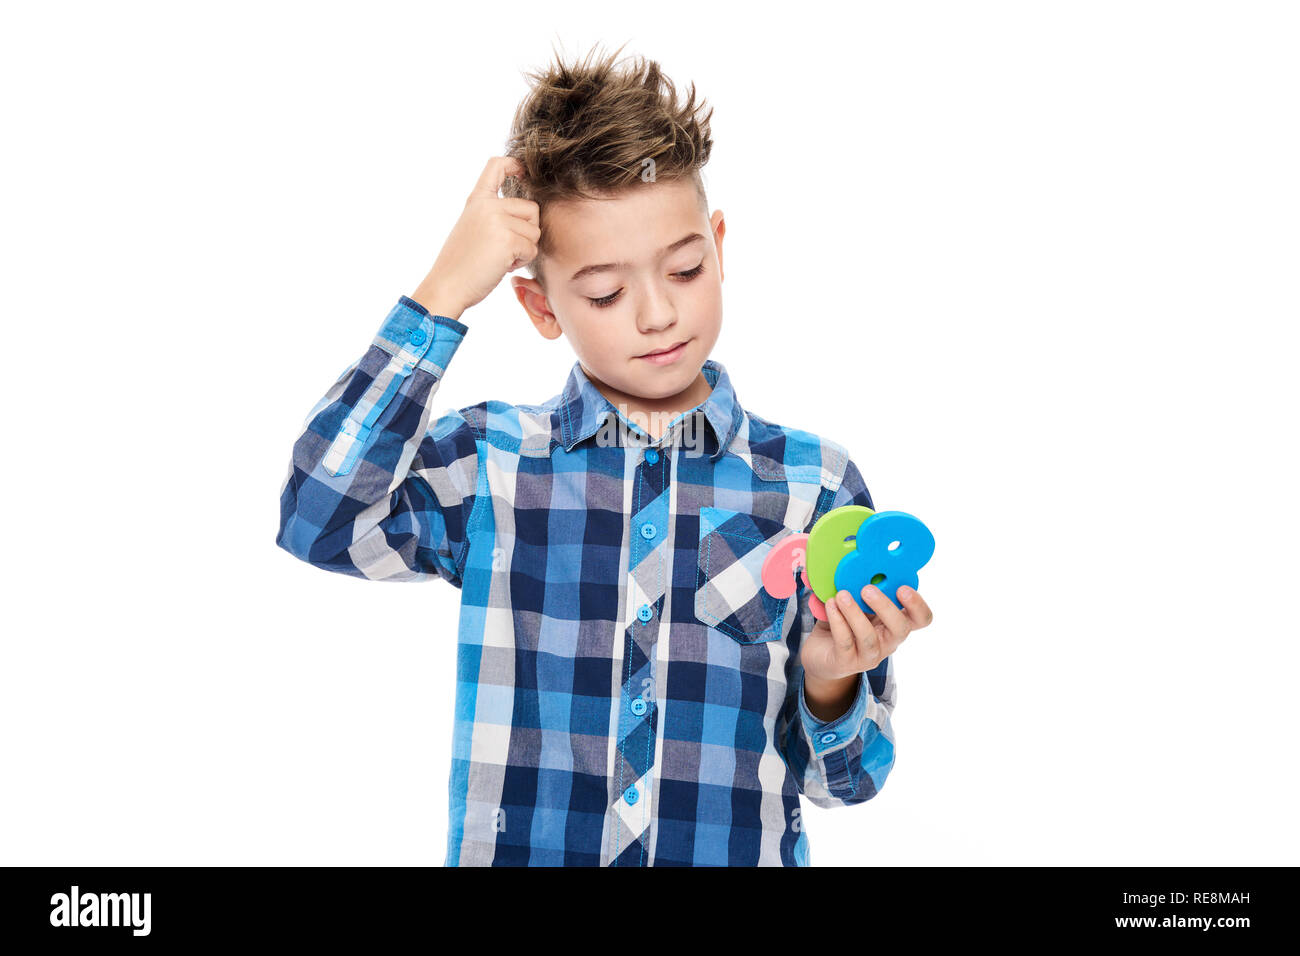 Cute boy with dyscalculia holding large colorful numbers and scratching his head. Learning disability concept on white background. - Stock Image